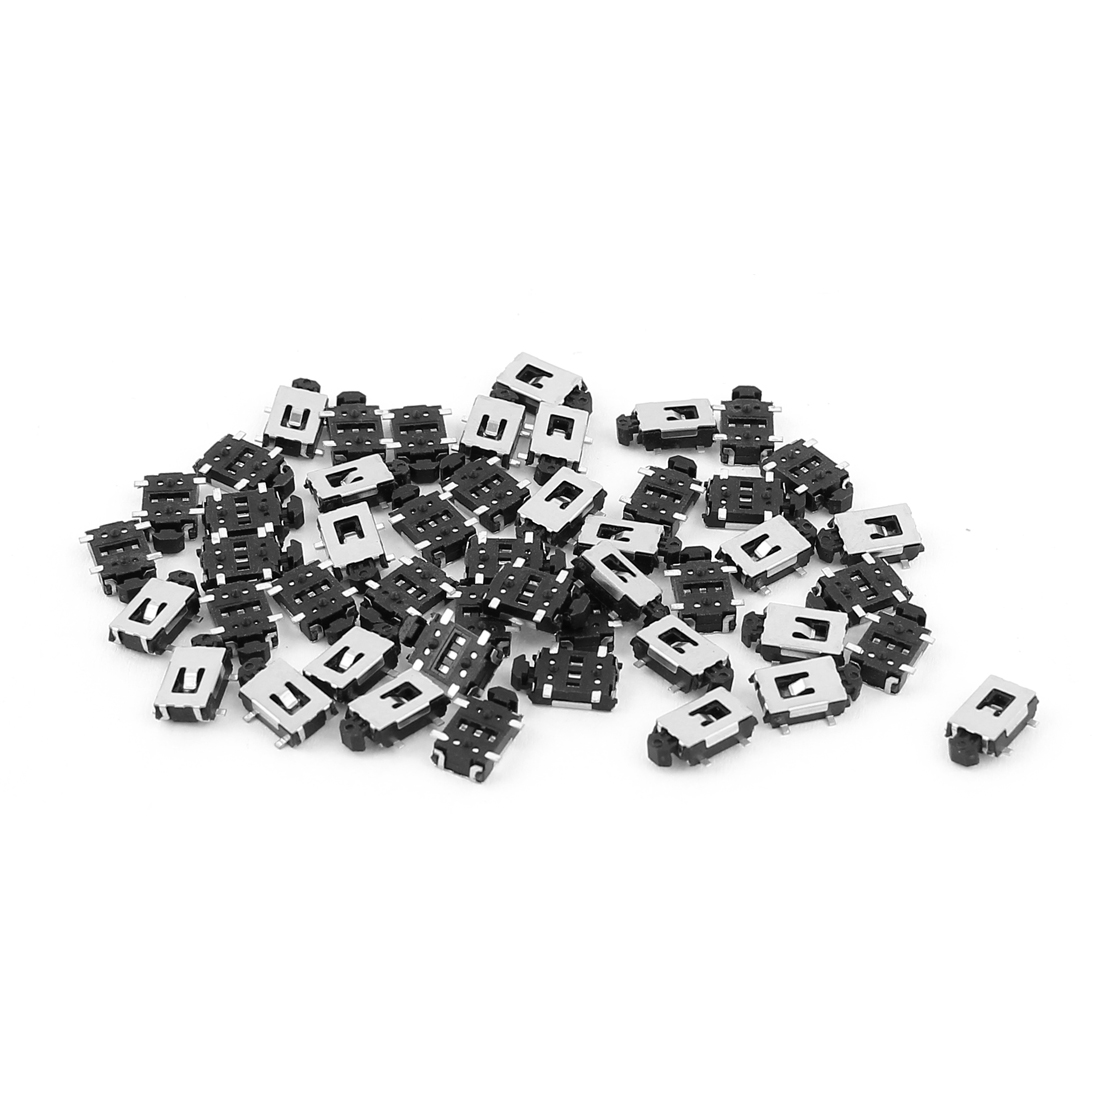 50 Pcs SMD PCB 4-Terminals Momentary Pushbutton Micro Tactile Tact Push Switch